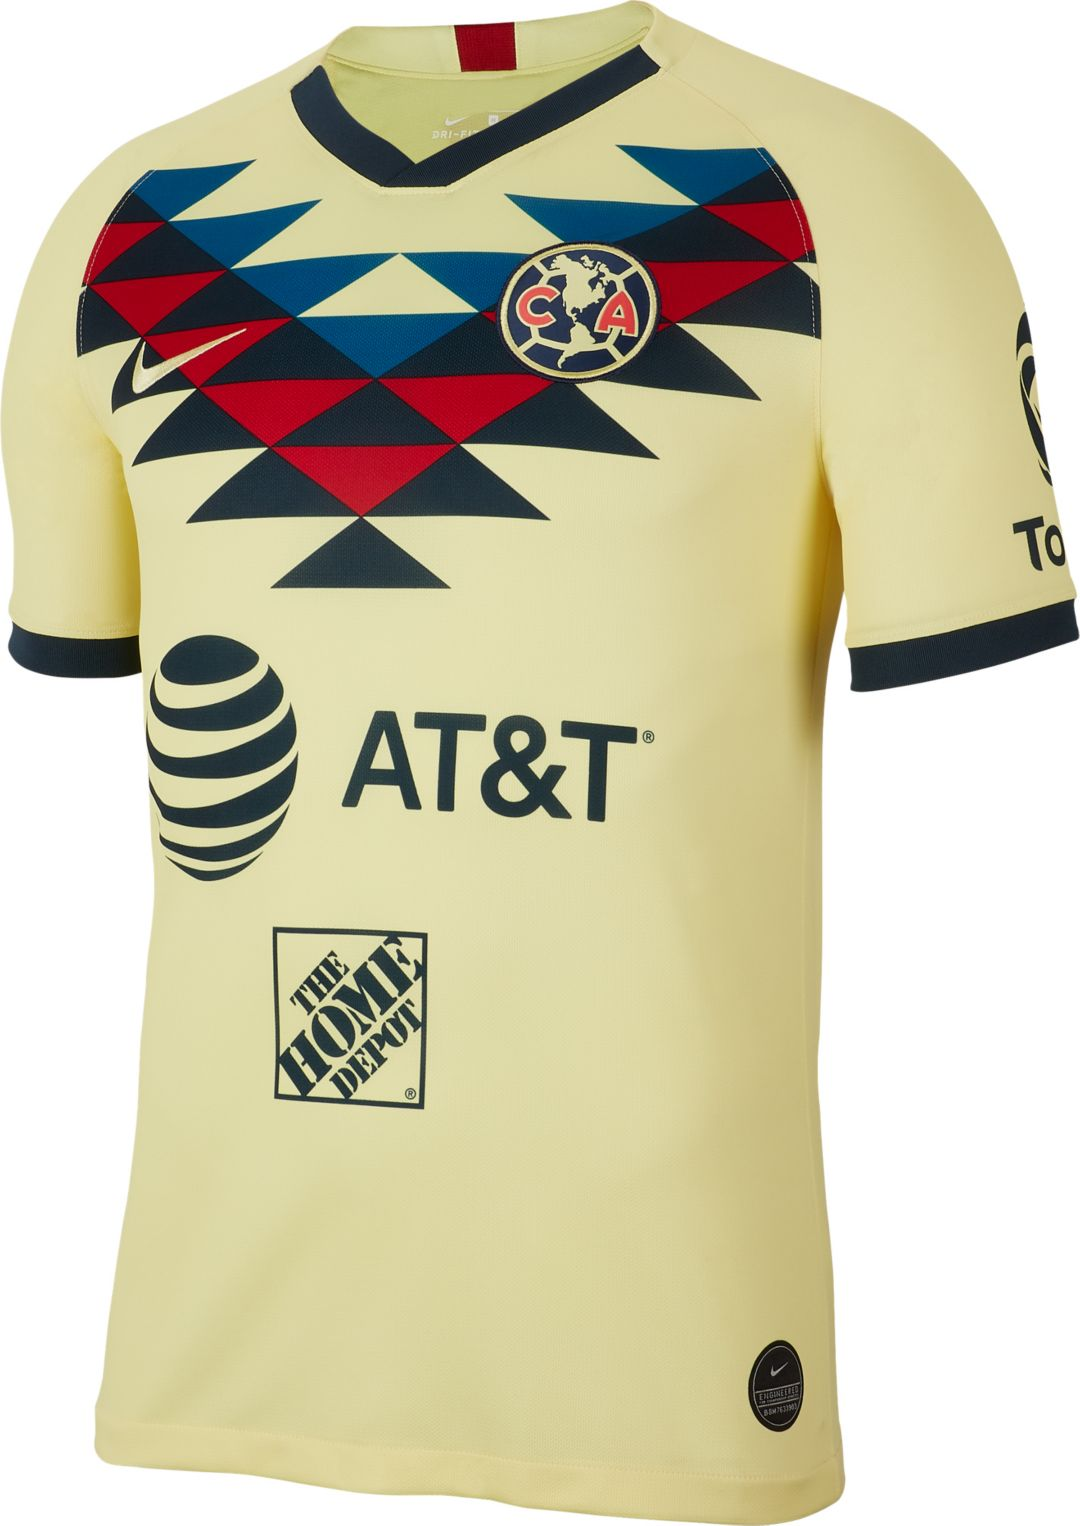 the best attitude 06212 fd8f3 Nike Men's Club America '19 Breathe Stadium Home Replica Jersey